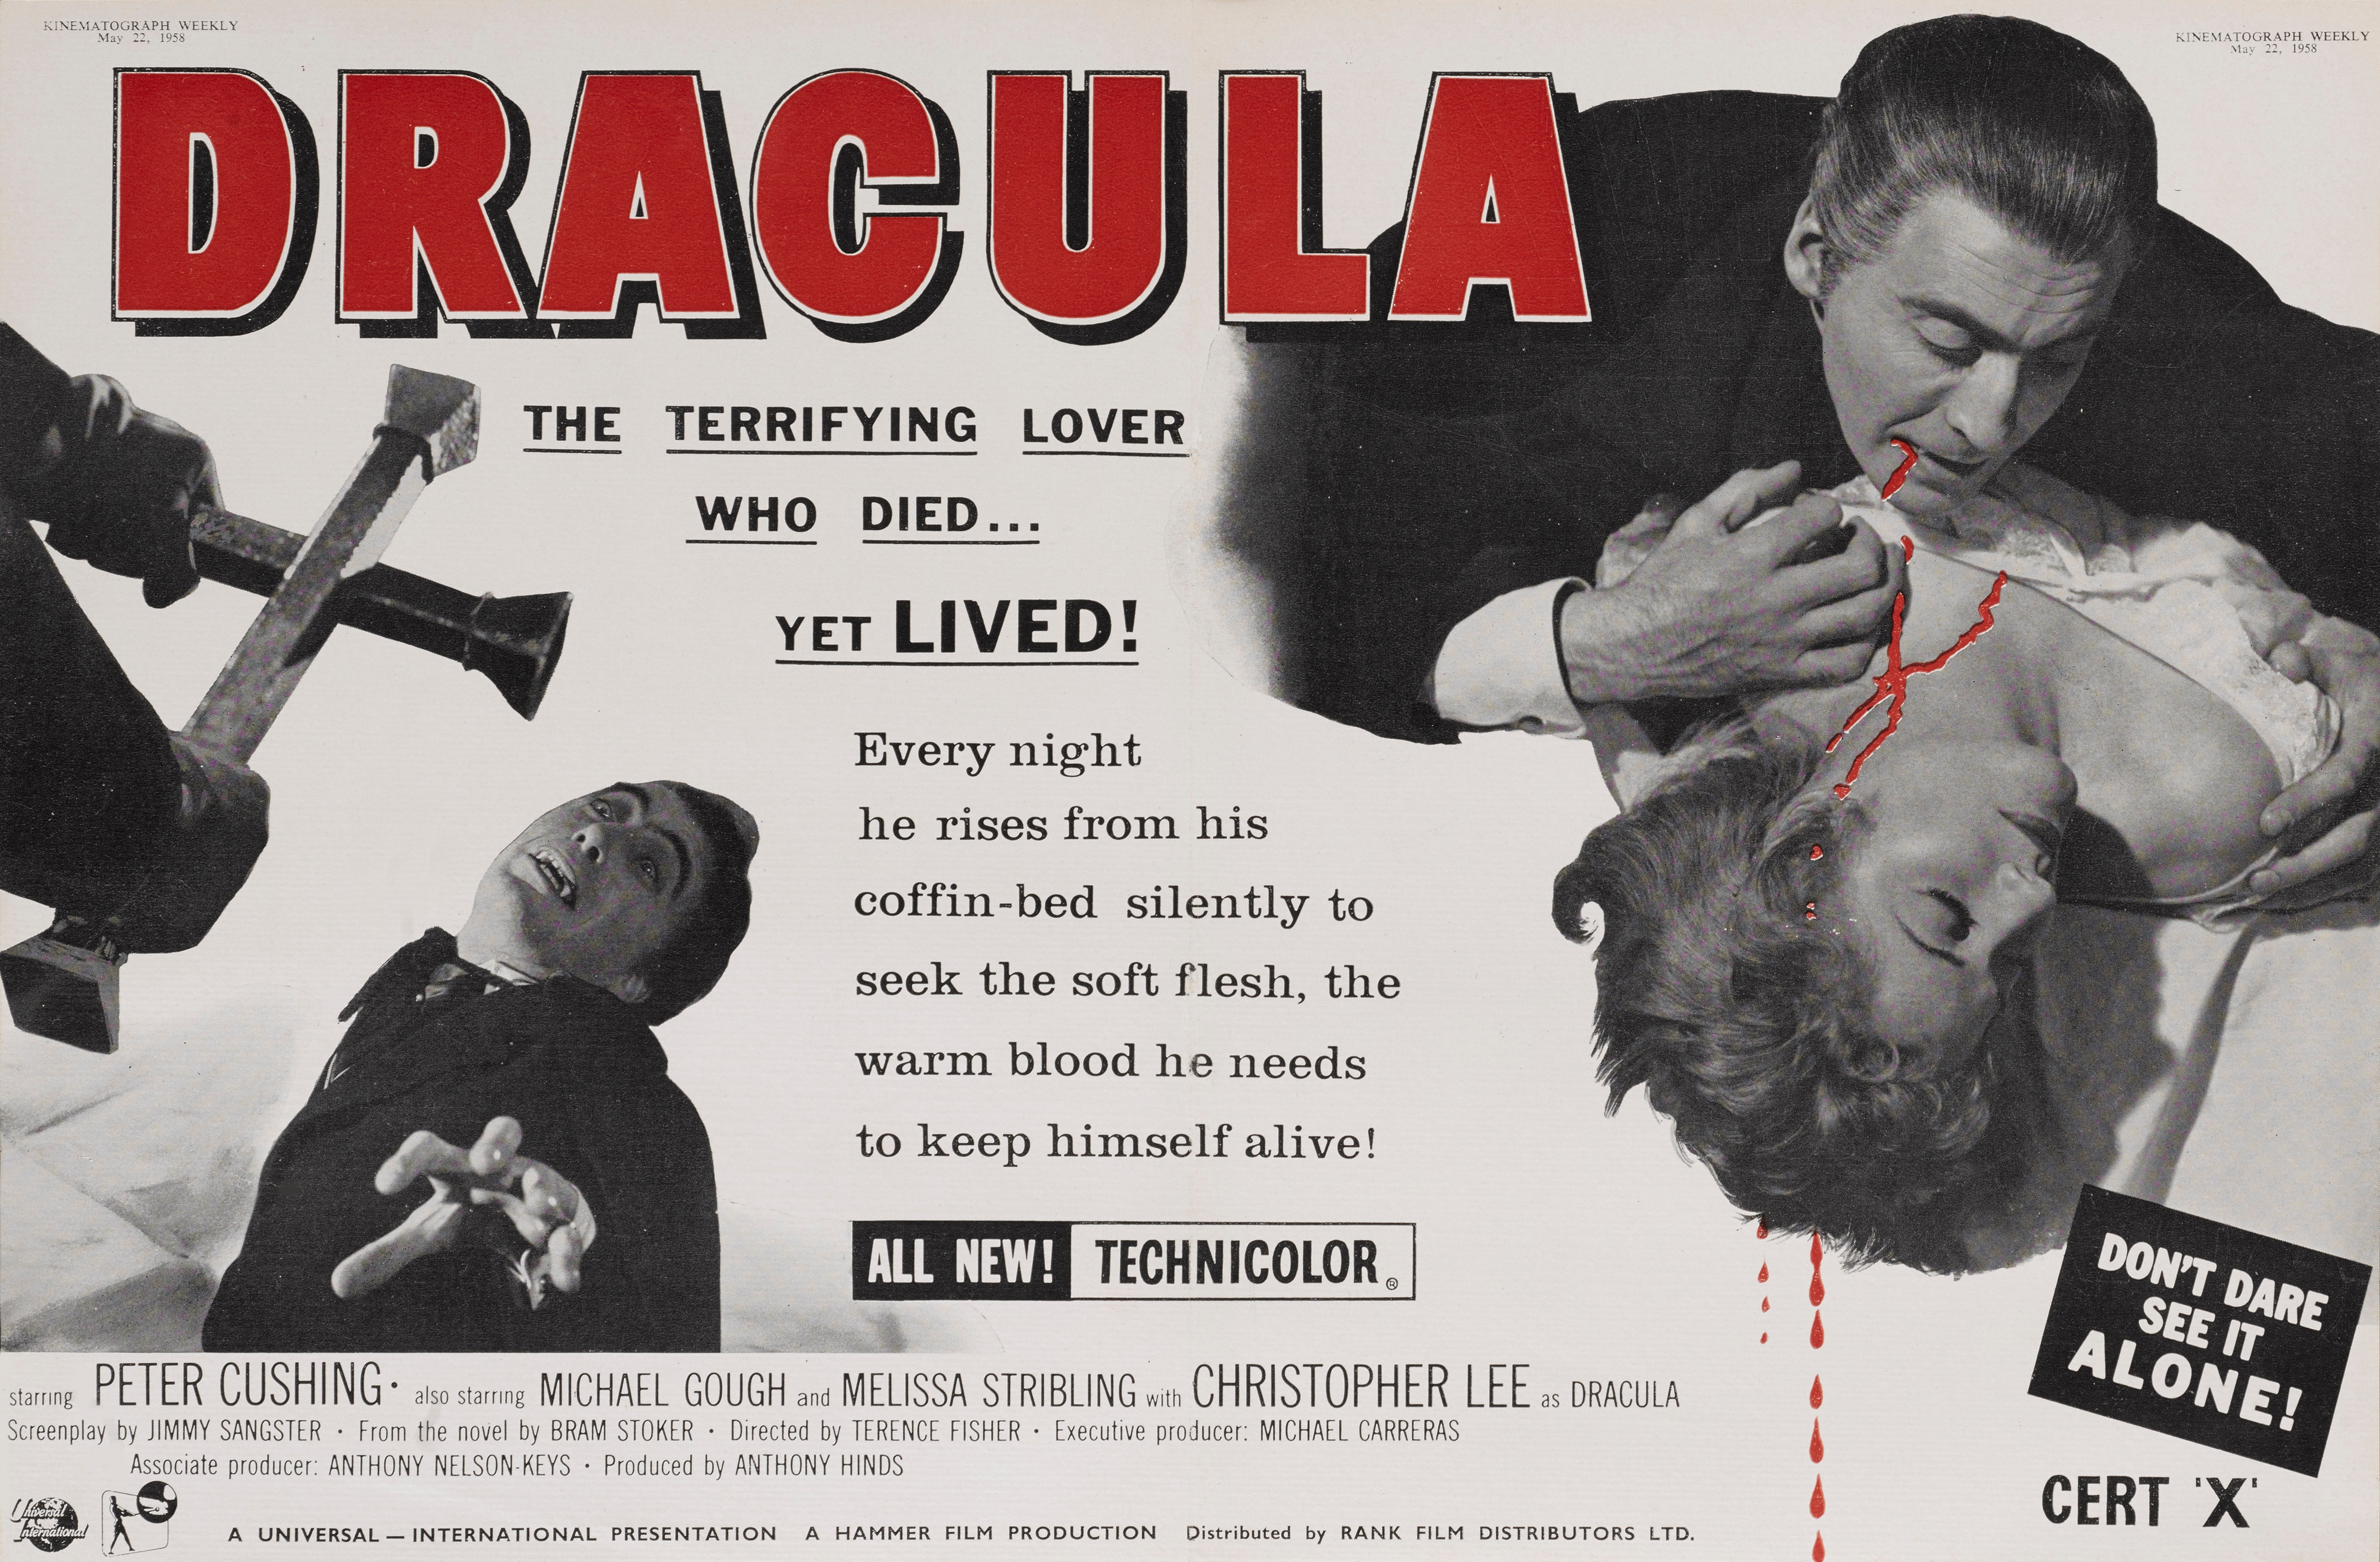 Dracula Peter Cushing Christopher Lee movie poster